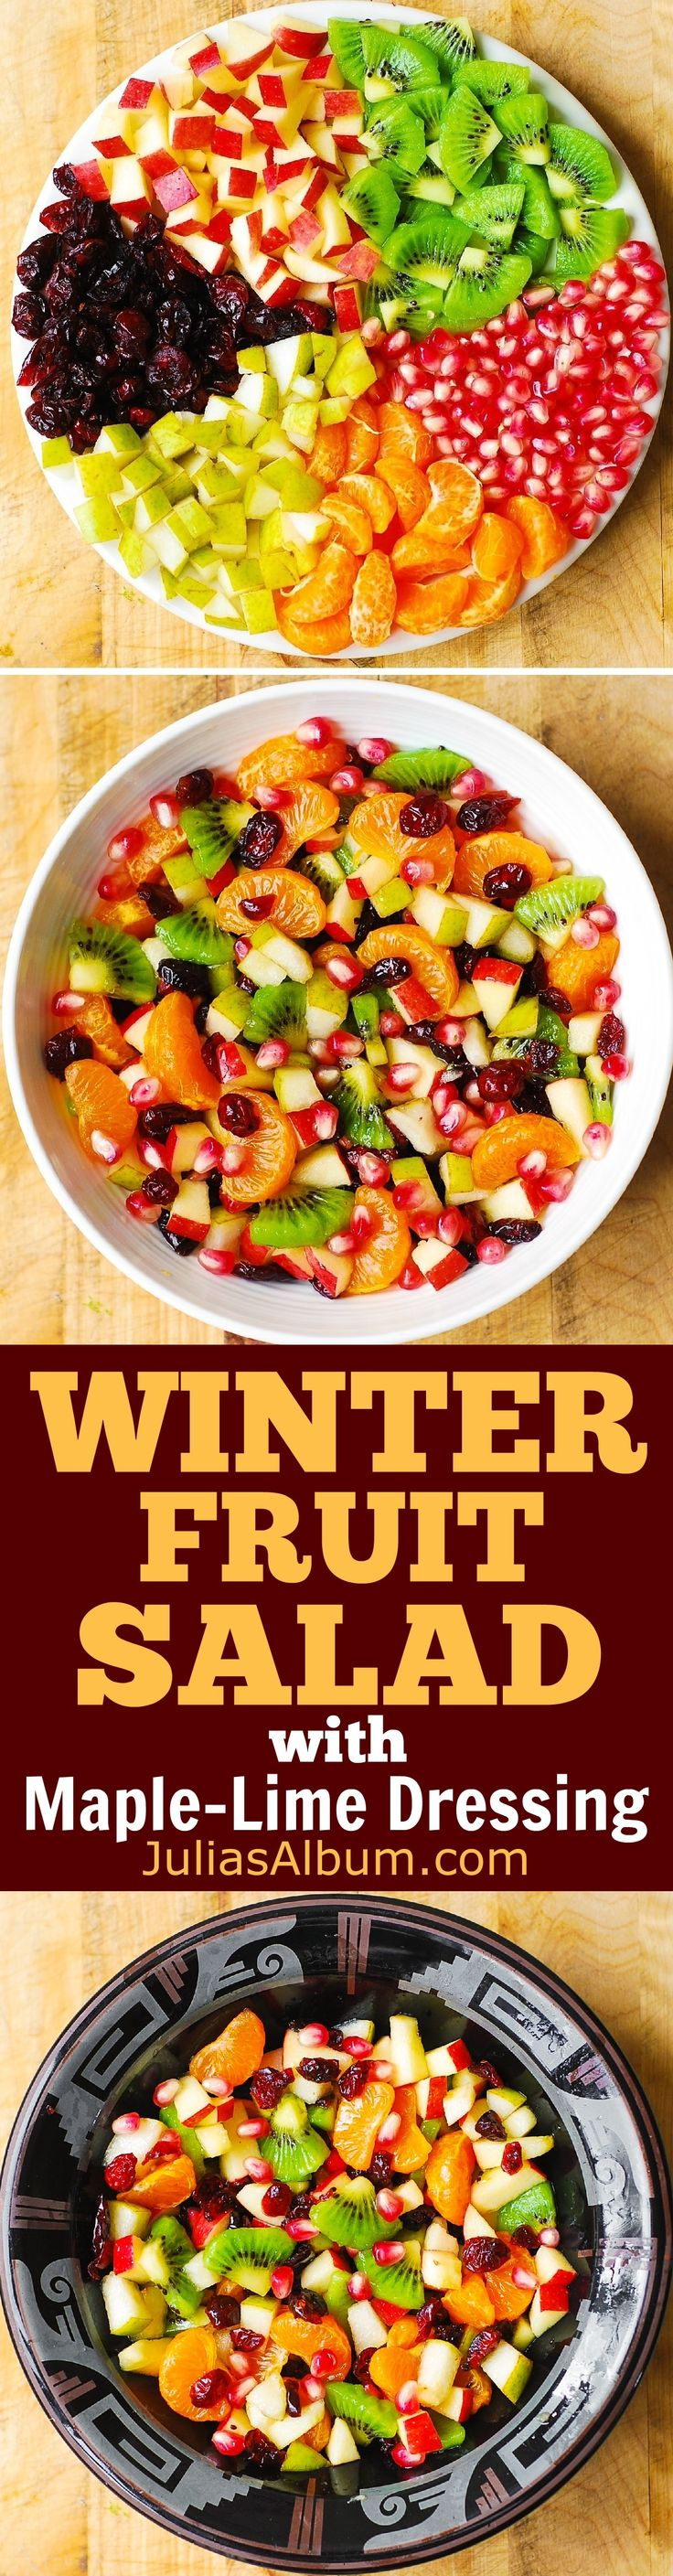 Winter Fruit Salad with Maple-Lime Dressing - perfect Thanksgiving or Christmas Holiday Salad!